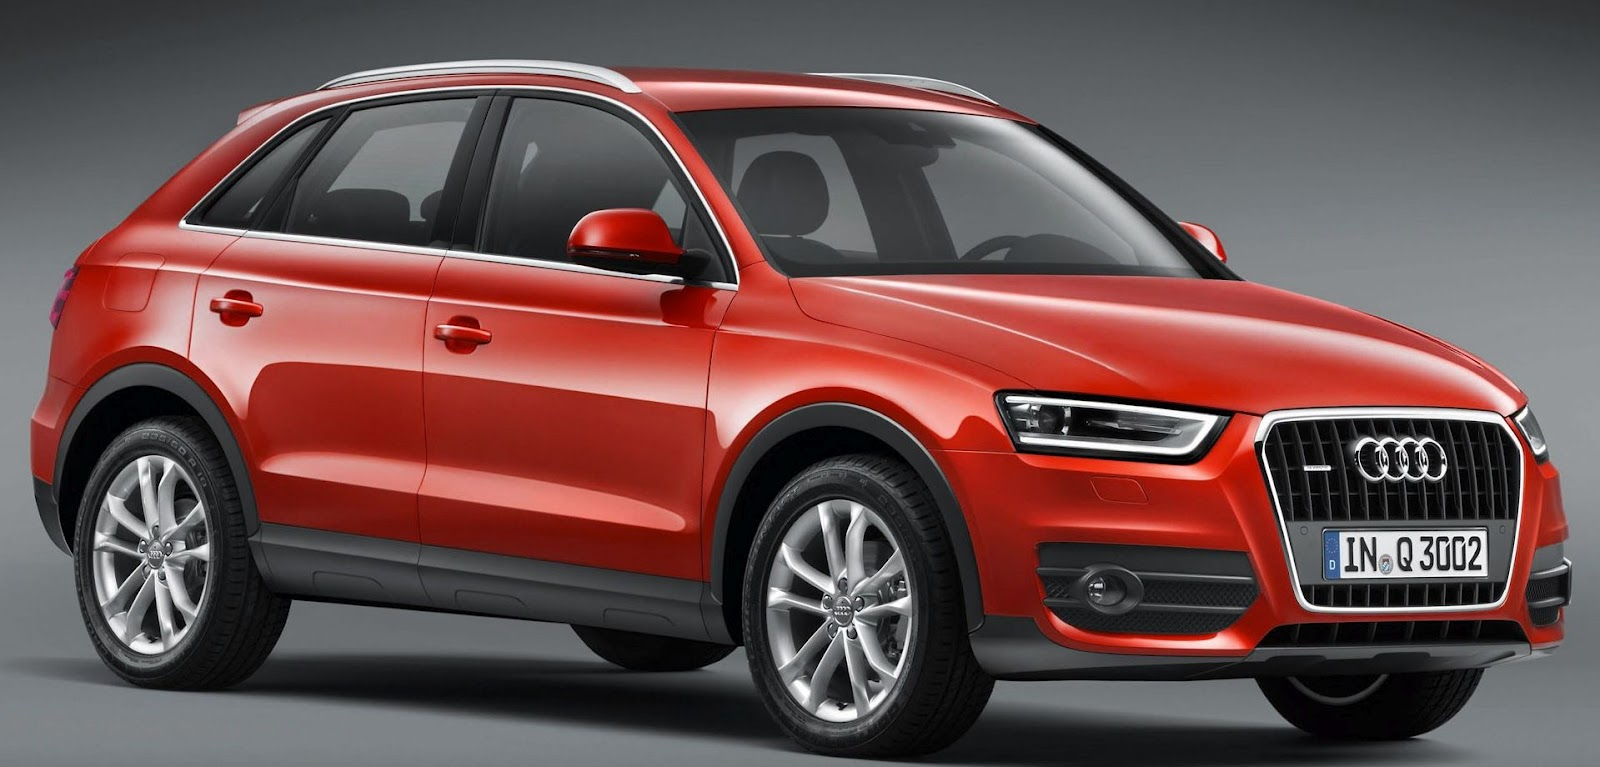 ways to world audi q3 in india 2012 review specification. Black Bedroom Furniture Sets. Home Design Ideas